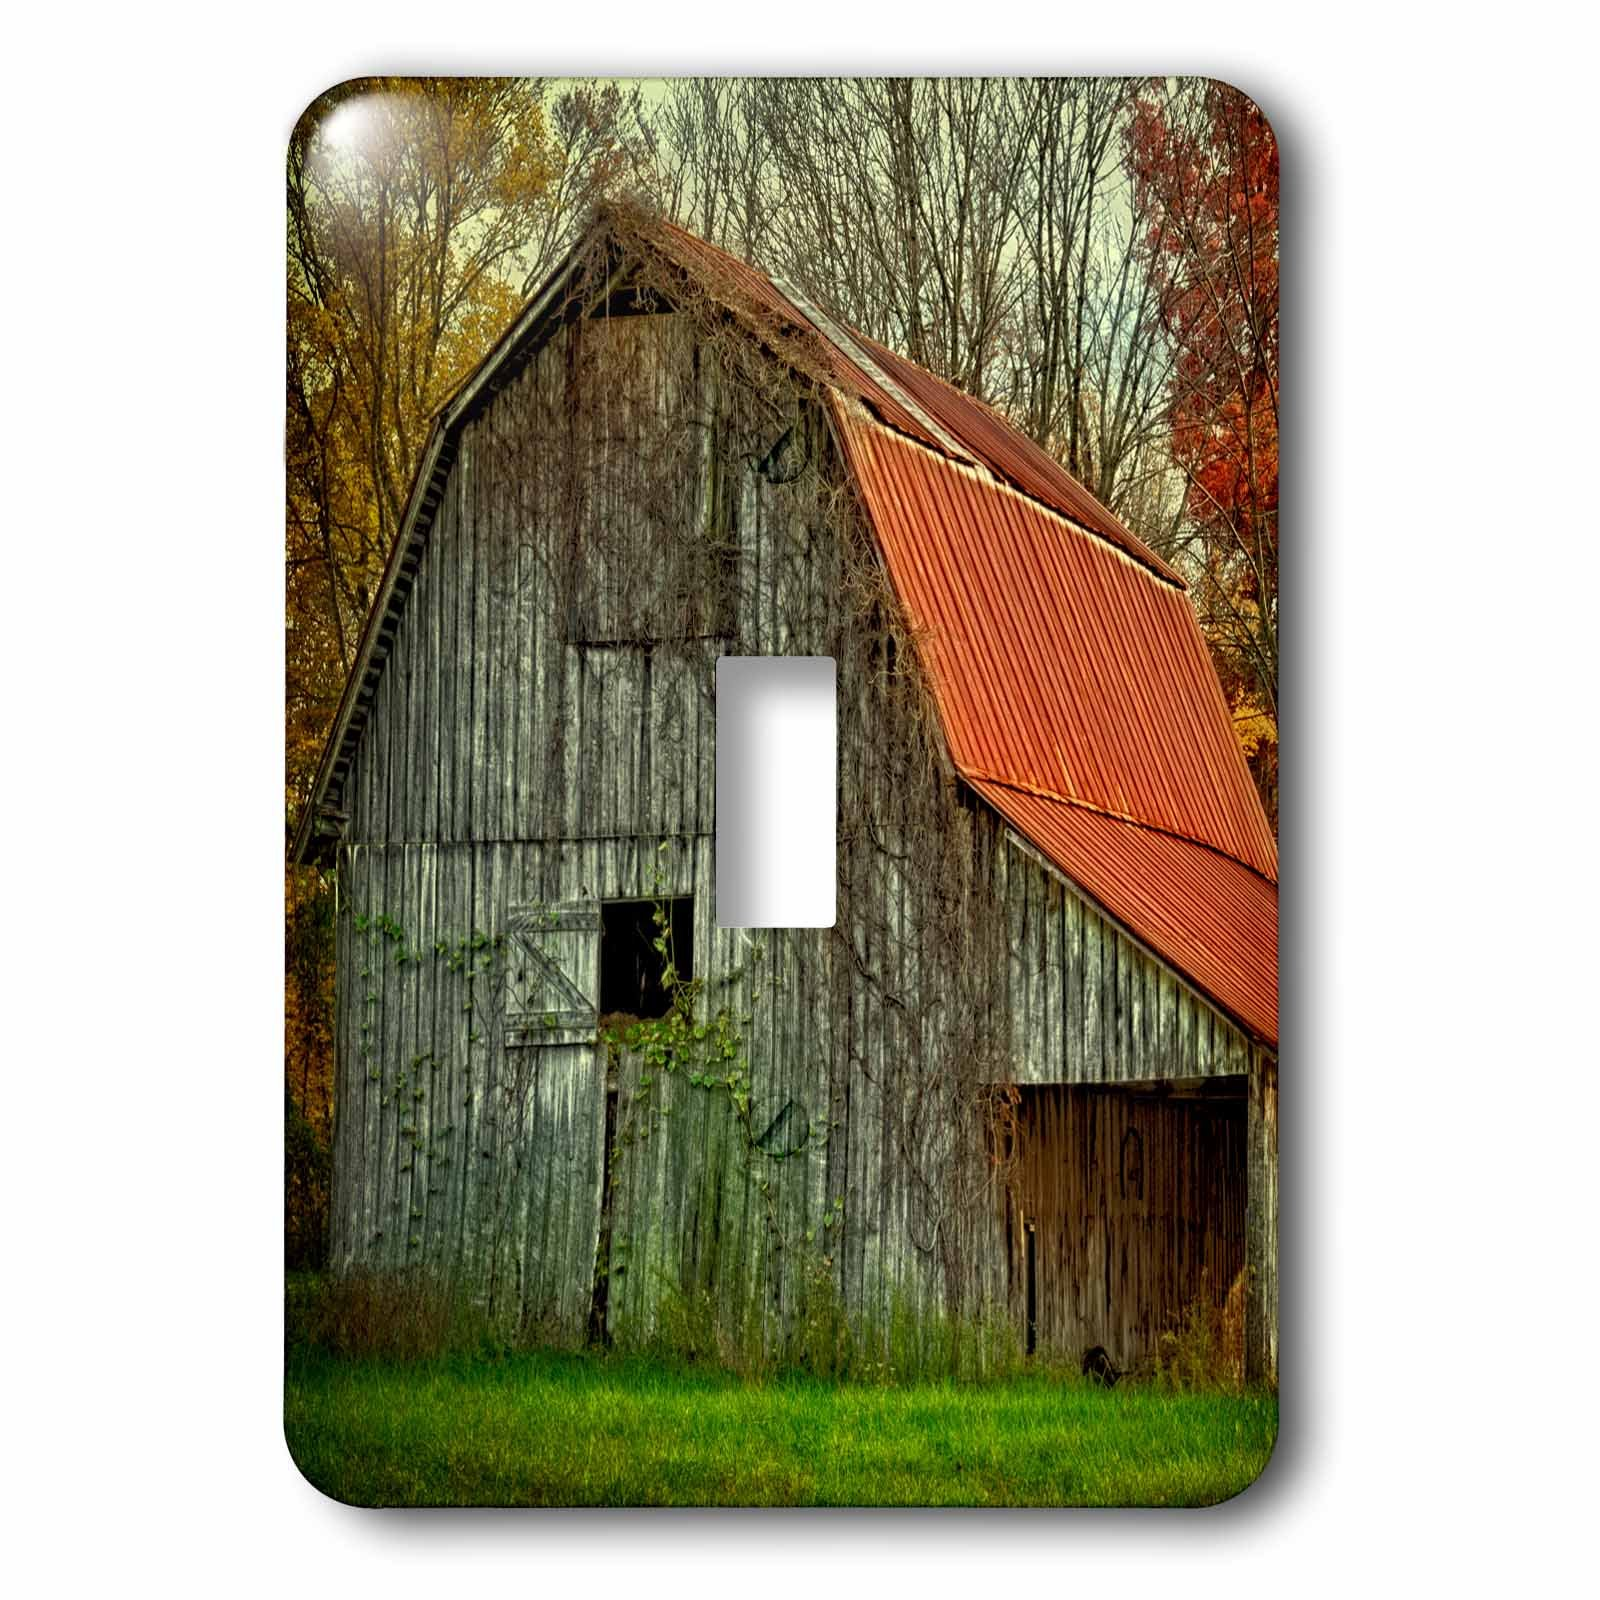 Danita Delimont - Rural - USA, Indiana. rural landscape, vine-covered barn with red roof - Light Switch Covers - single toggle switch (lsp_230816_1)